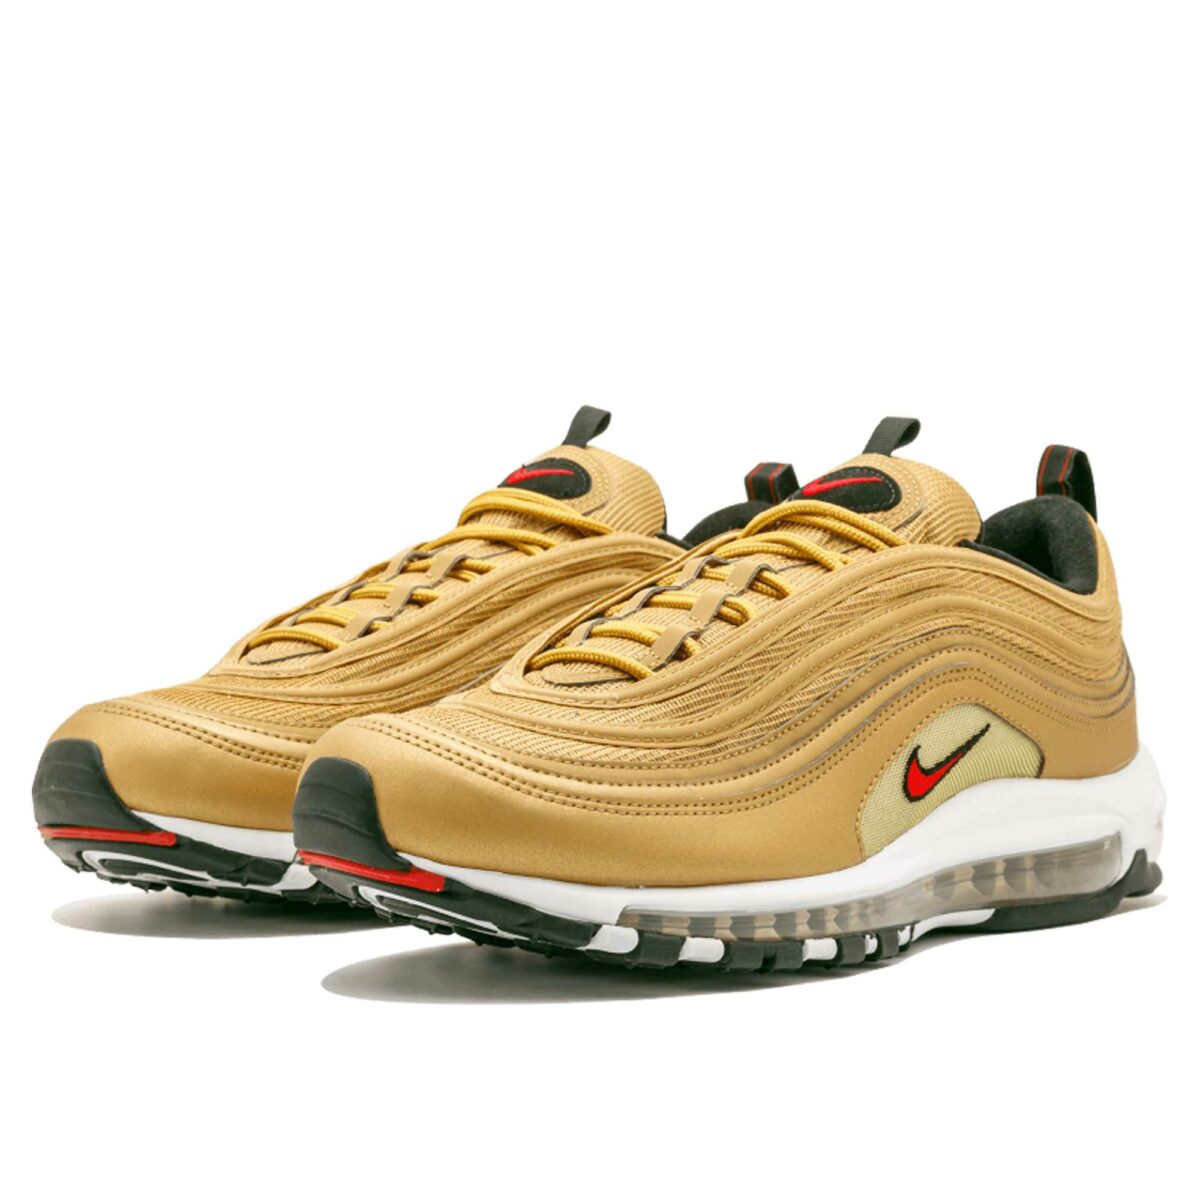 nike air max 97 OG QS metallic gold 884421_700 купить